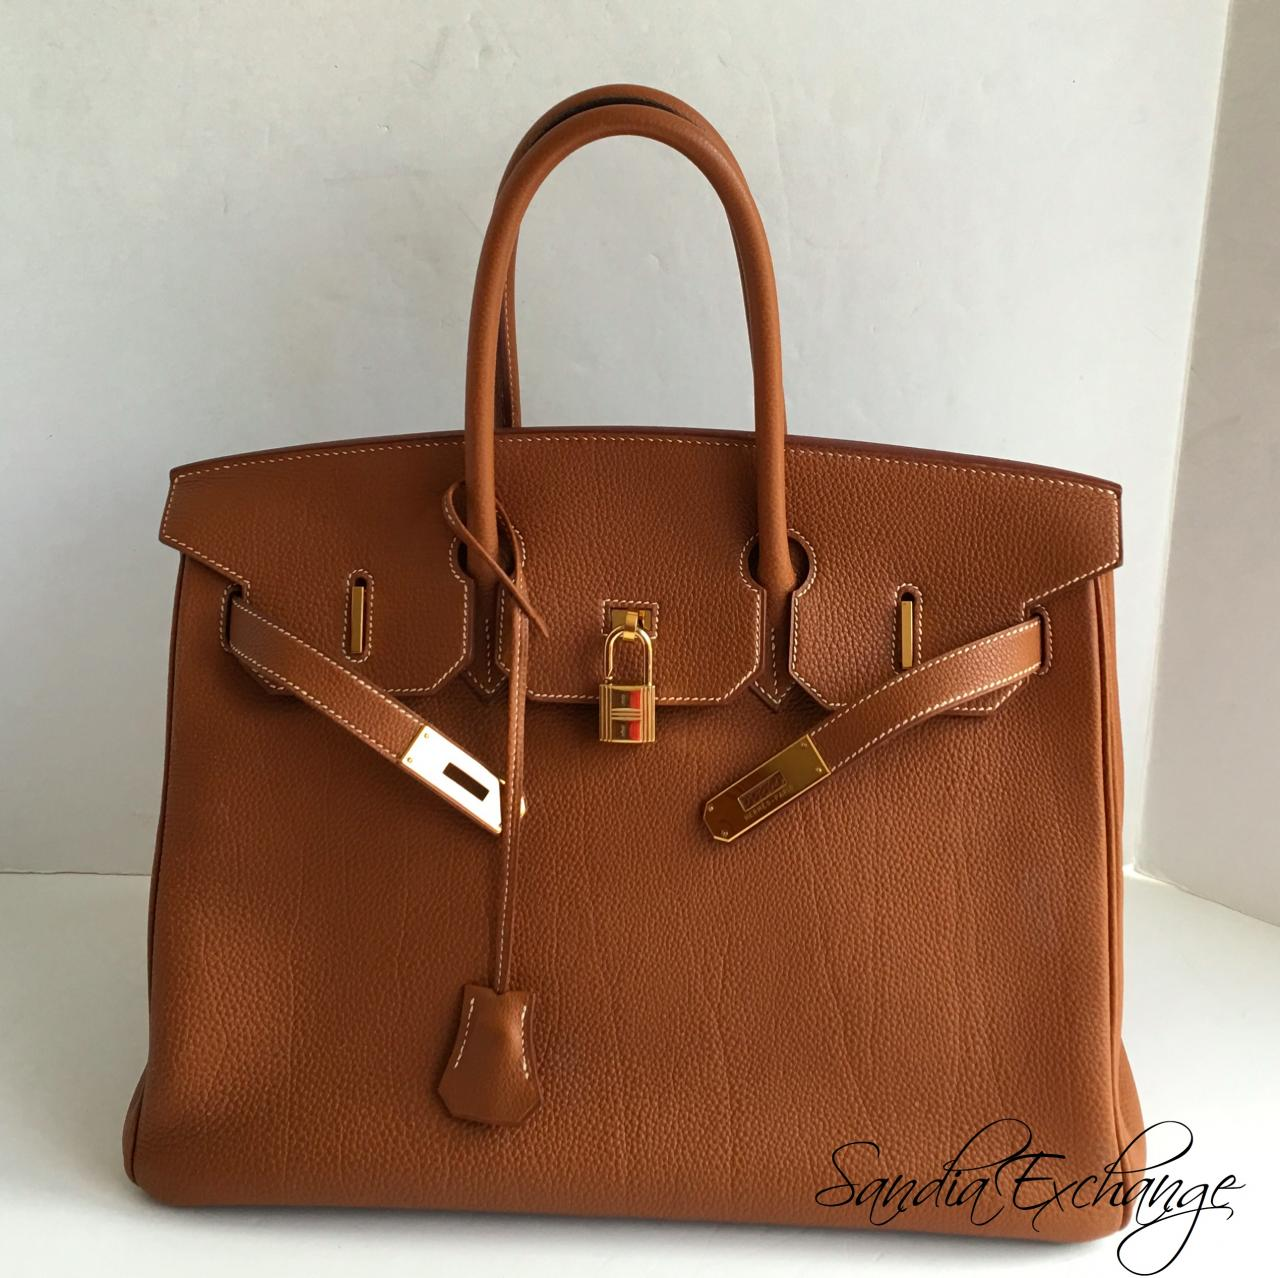 where are brighton purses made - Hermes change purse in Epsom calfskin honey